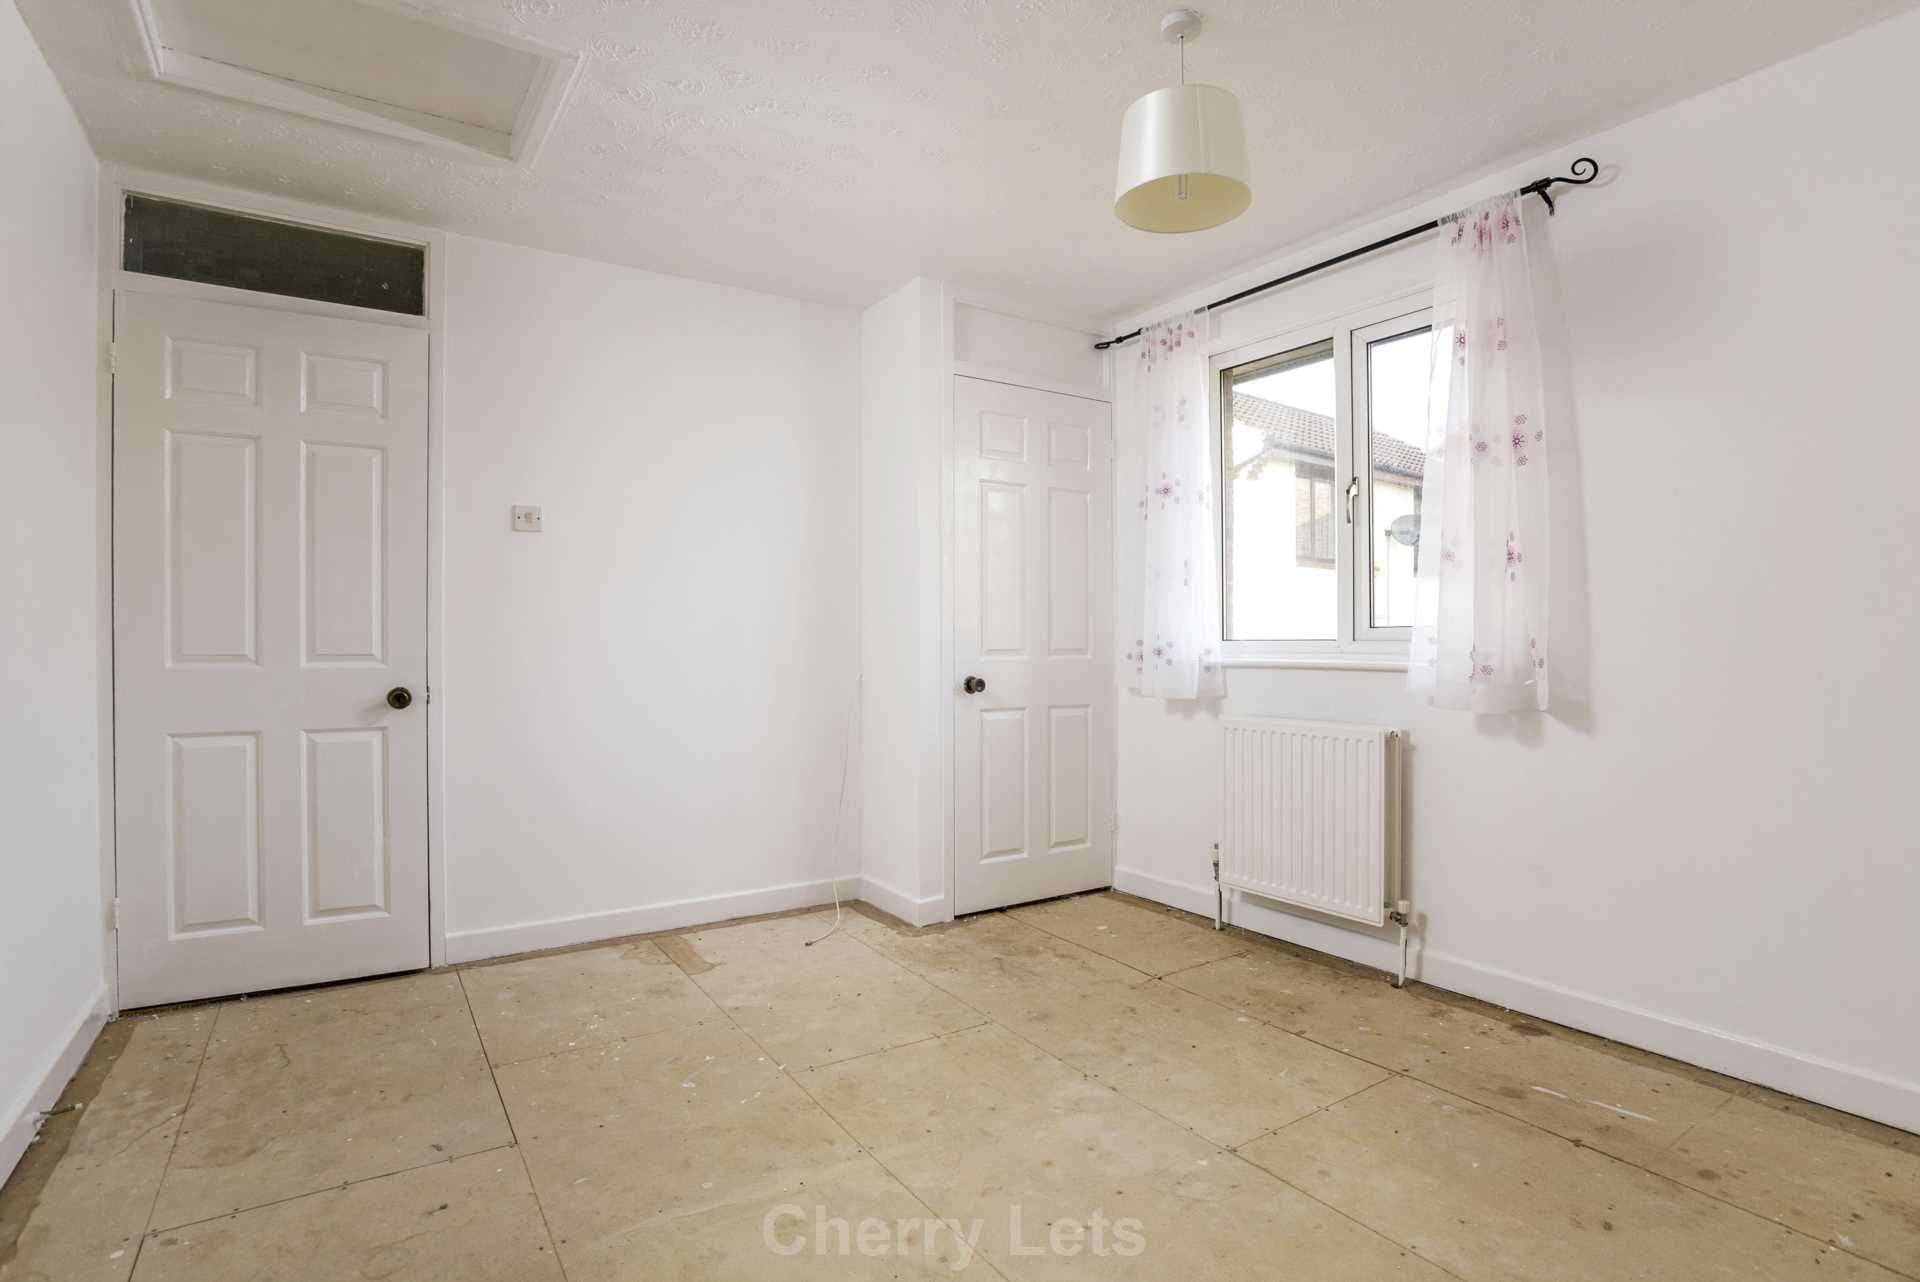 1 bed end of terrace house to rent in Bedford Close, Banbury, OX16 7